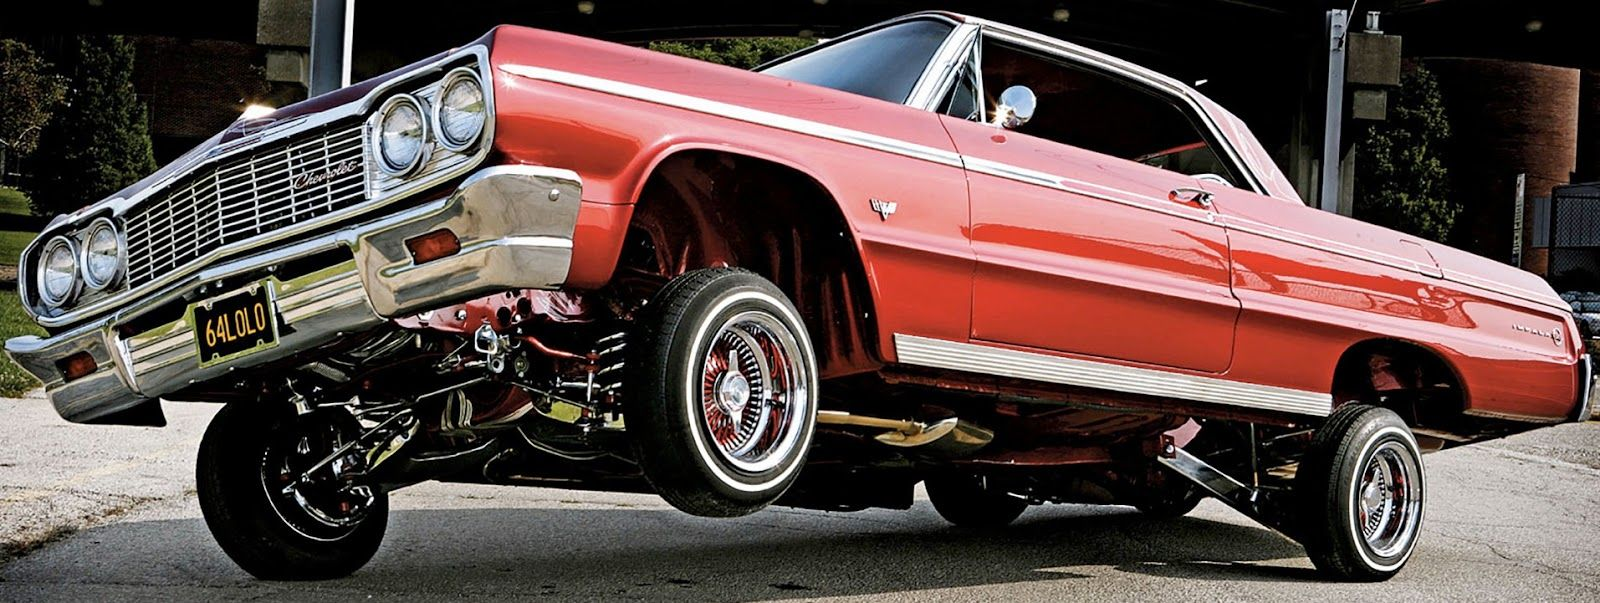 1600x603 - Lowrider Wallpapers 14